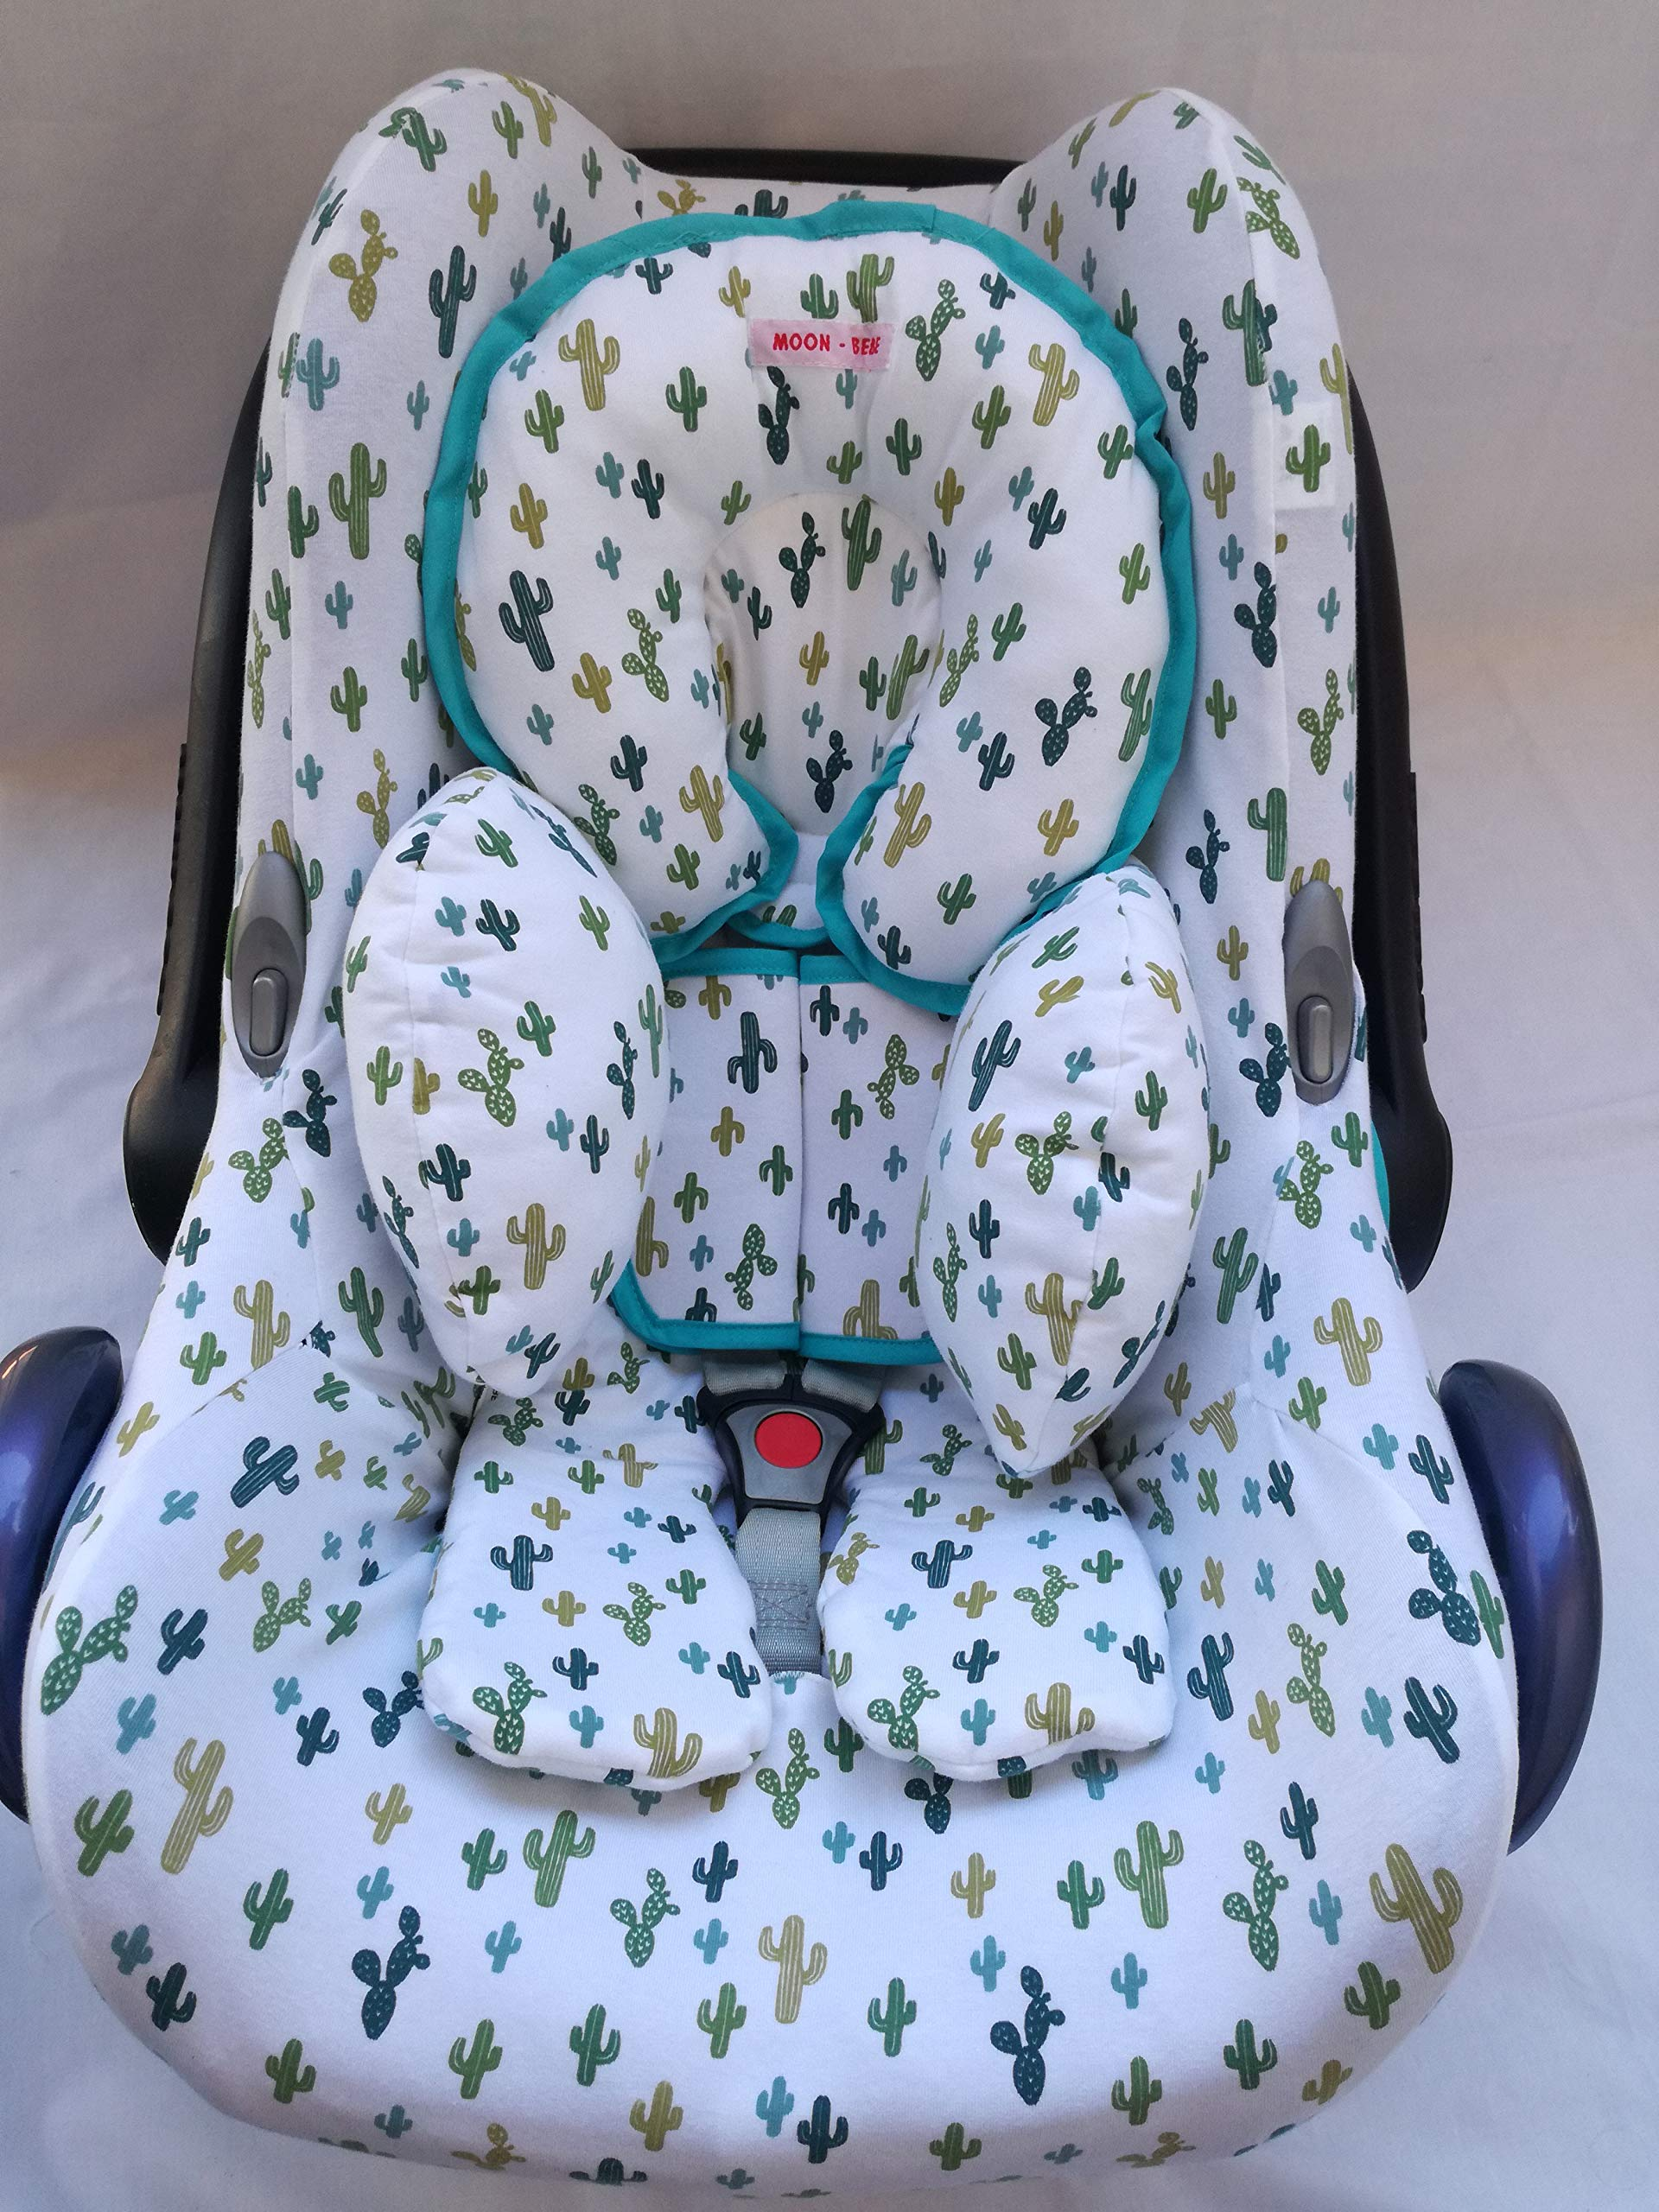 MOON.BEBE Cover Liner for Maxi COSI Cabrio Fix, Citi, Streety Fix, Jané Koos WHITE(GREEN CACTUS) Moon-bebe Quick and easy to put on thanks to its elasticated edges. Fits over the chair as standard, no need to remove the pre-existing cover from the manufacturer Manufactured in Spain. Does not include the Maxi Cosi Baby Carrier. The hood and the reducer are sold separately. Made of cotton, it does not irritate your baby's skin and provides optimal weather and comfort in the car seat. The cover prevents the chair from wear and tear, keeping it looking new for years 5